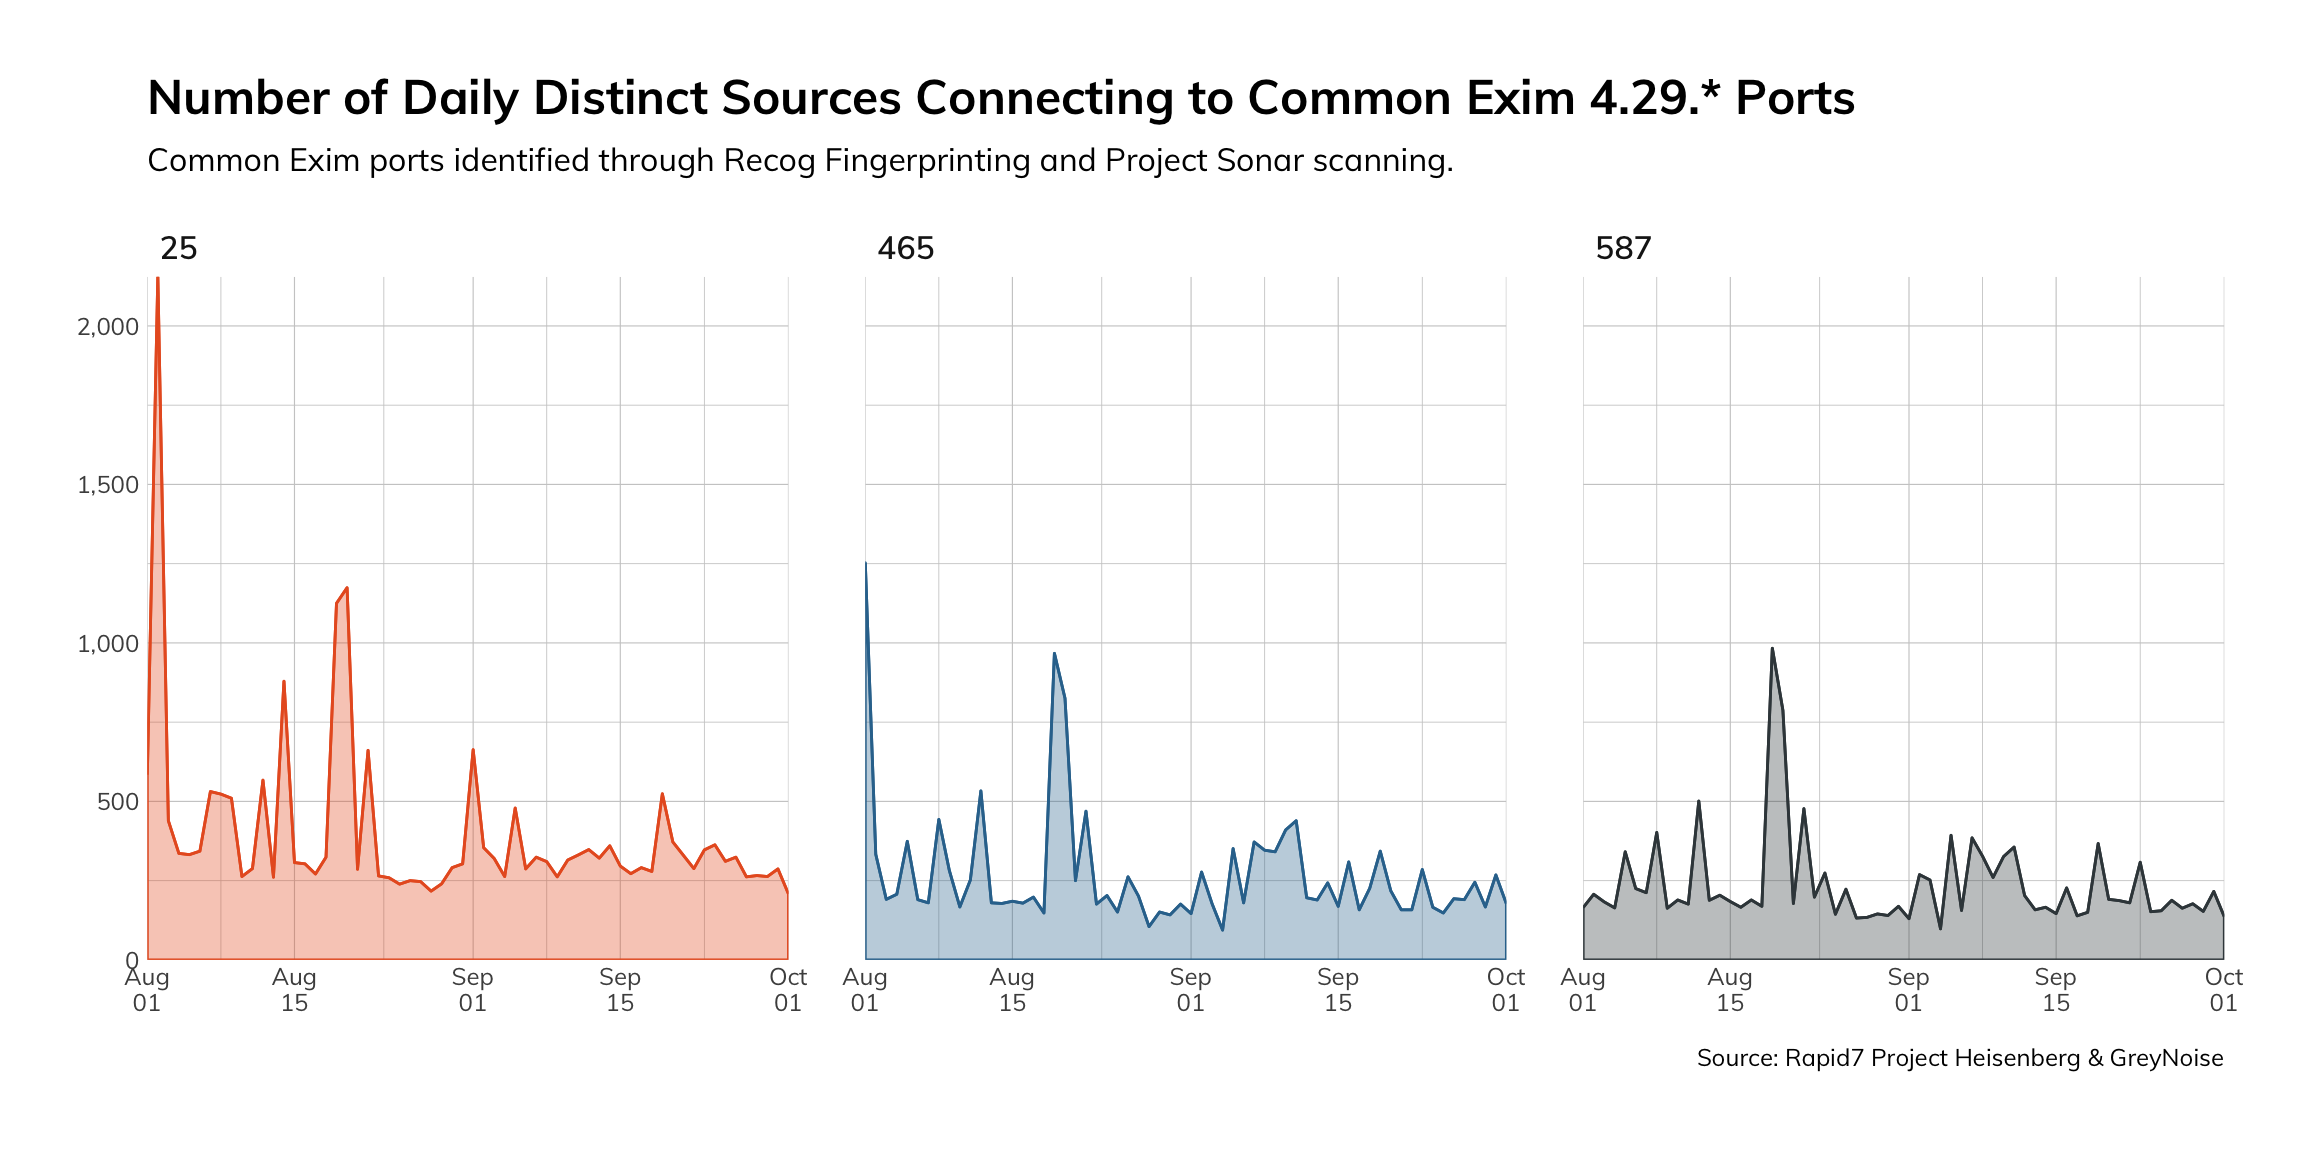 Number of daily connections to common Exim ports from potential malicious actors